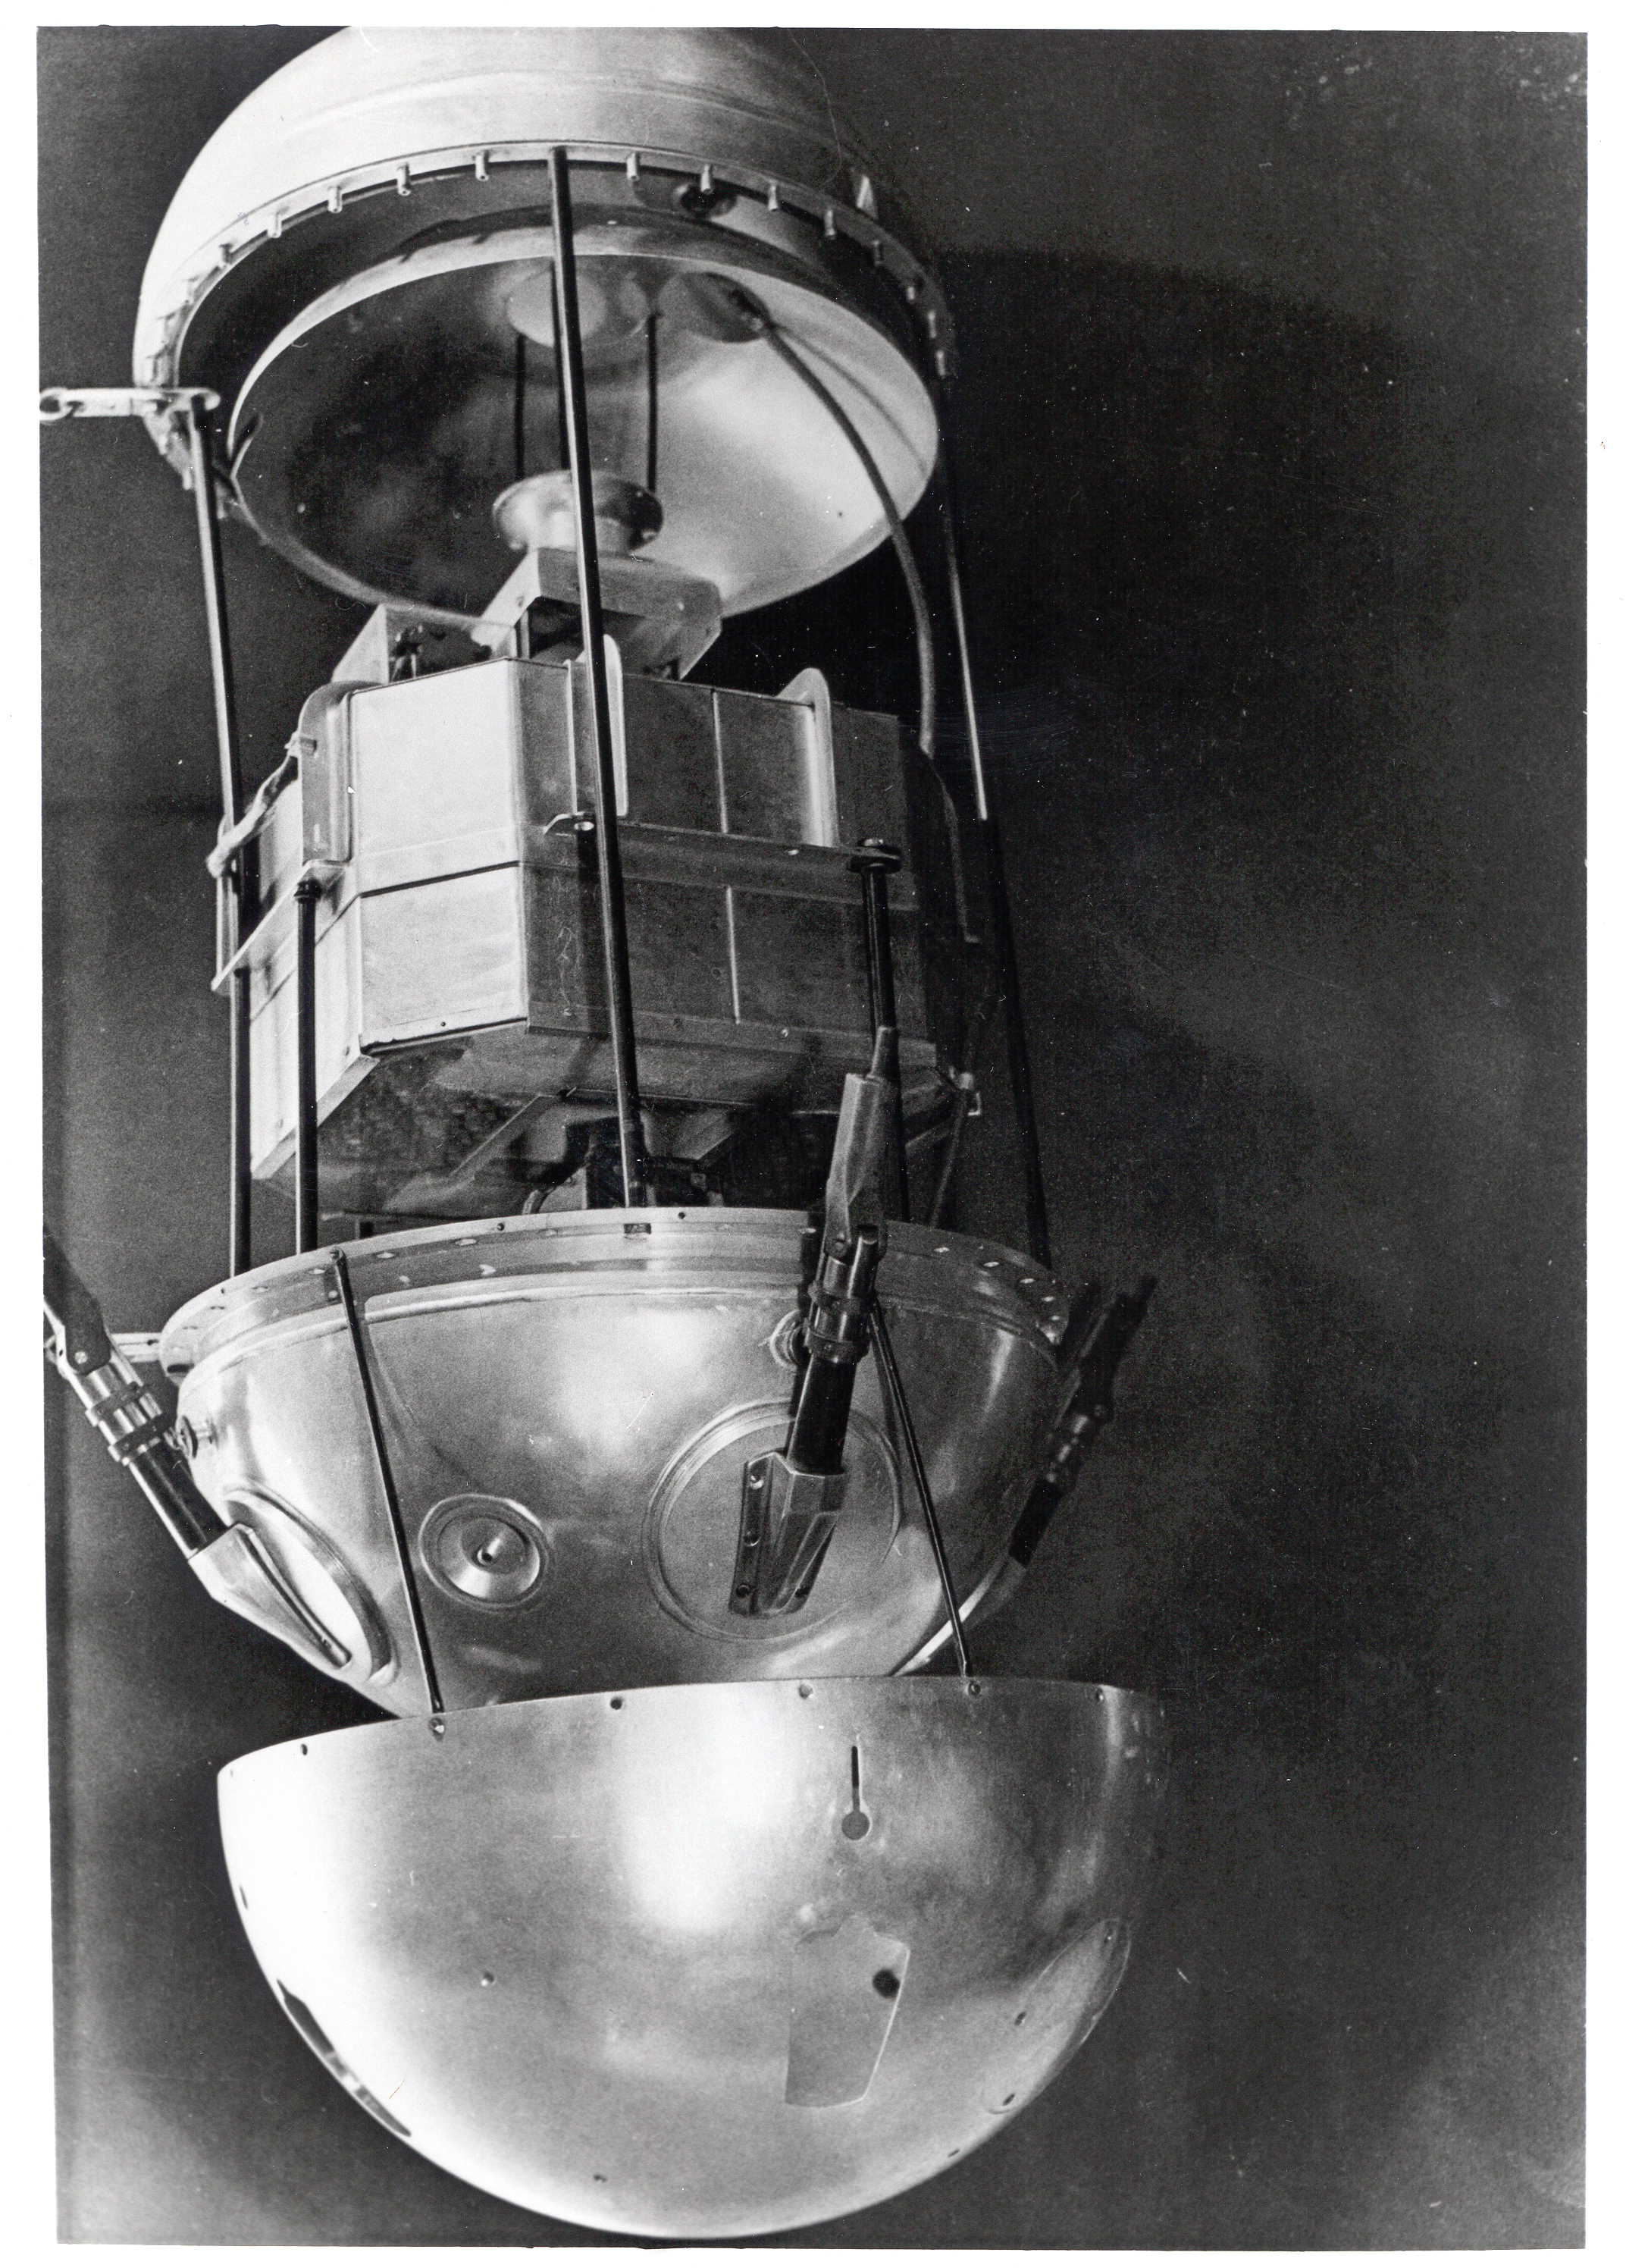 """an essay on sputnik an artificial satellite Free essays \ sputnik sputnik  the sputnik, which got the size of a beach ball, was the world's first artificial satellite contained two beeping radio transmitters that allowed observers to track its orbit a decade earlier, the rand corporation had foreseen that the launching of the first artificial satellite to orbit the earth """"would inflame the imagination of mankind,."""